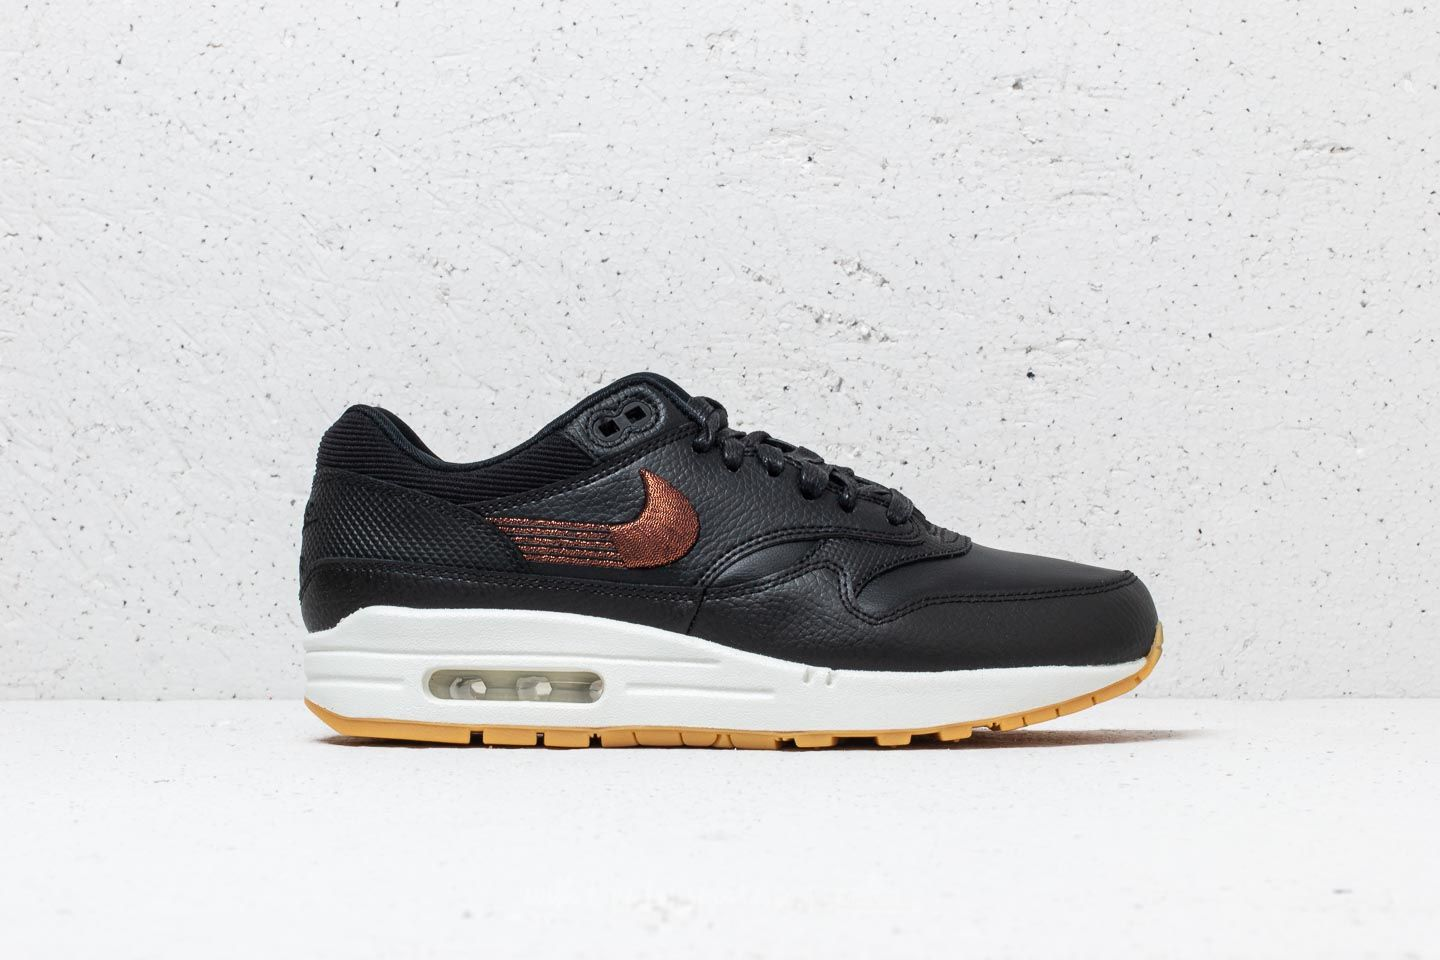 1a036bfd0f Nike Wmns Air Max 1 Premium Black/ Black-Gum Yellow at a great price